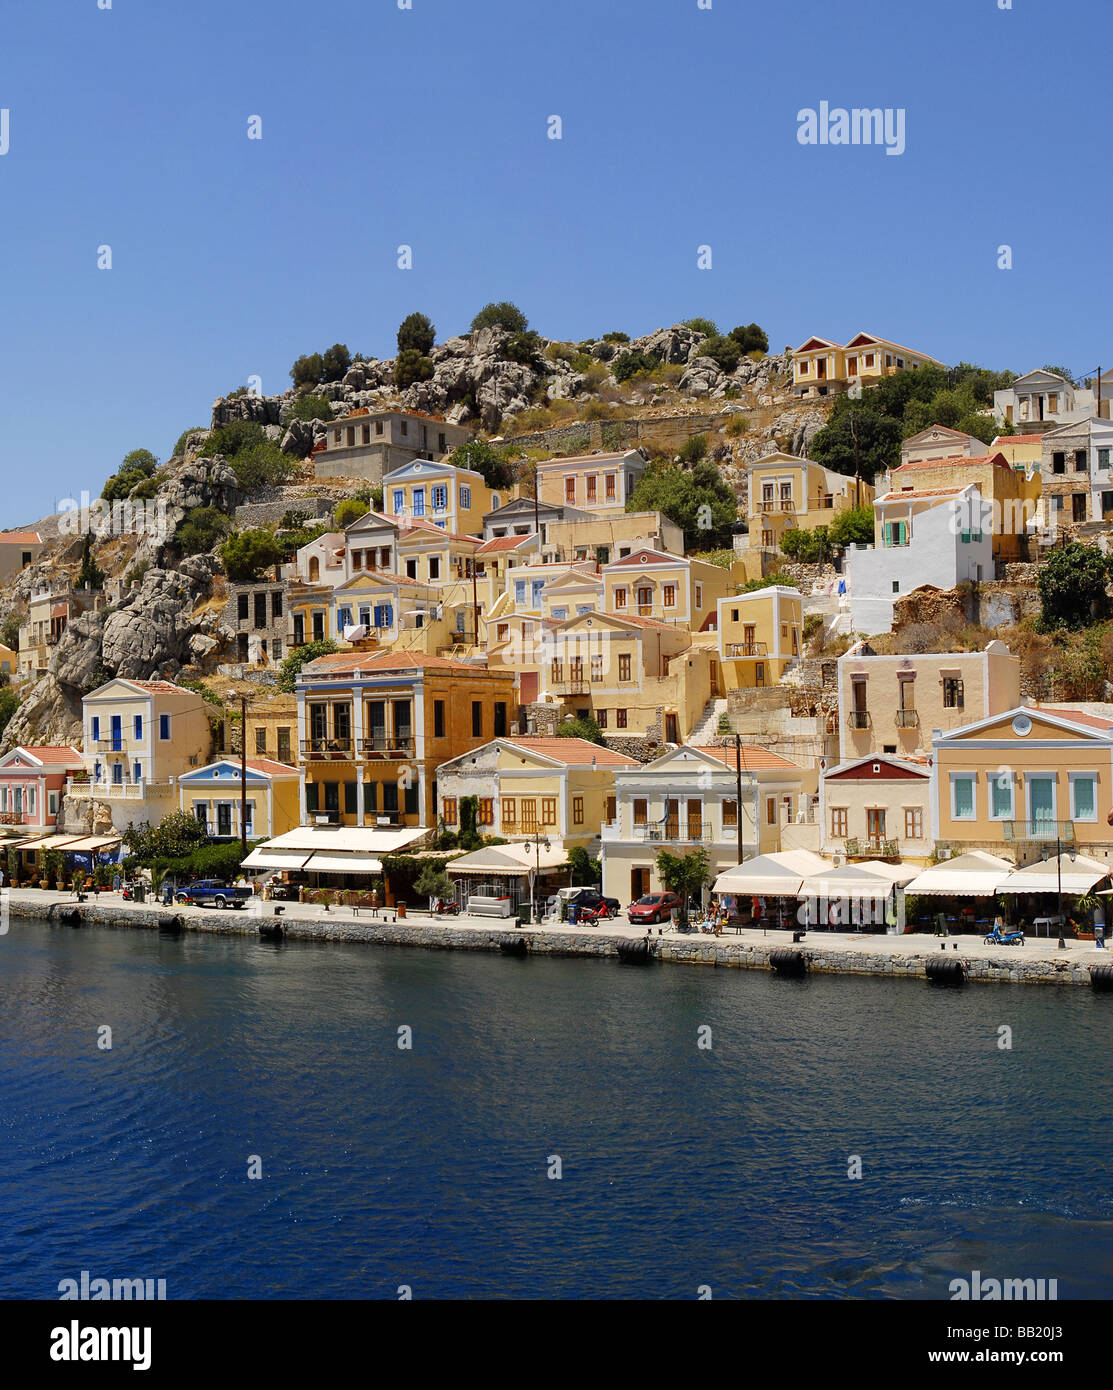 The Harbour Gialos Yialos city of Symi Greece - Stock Image